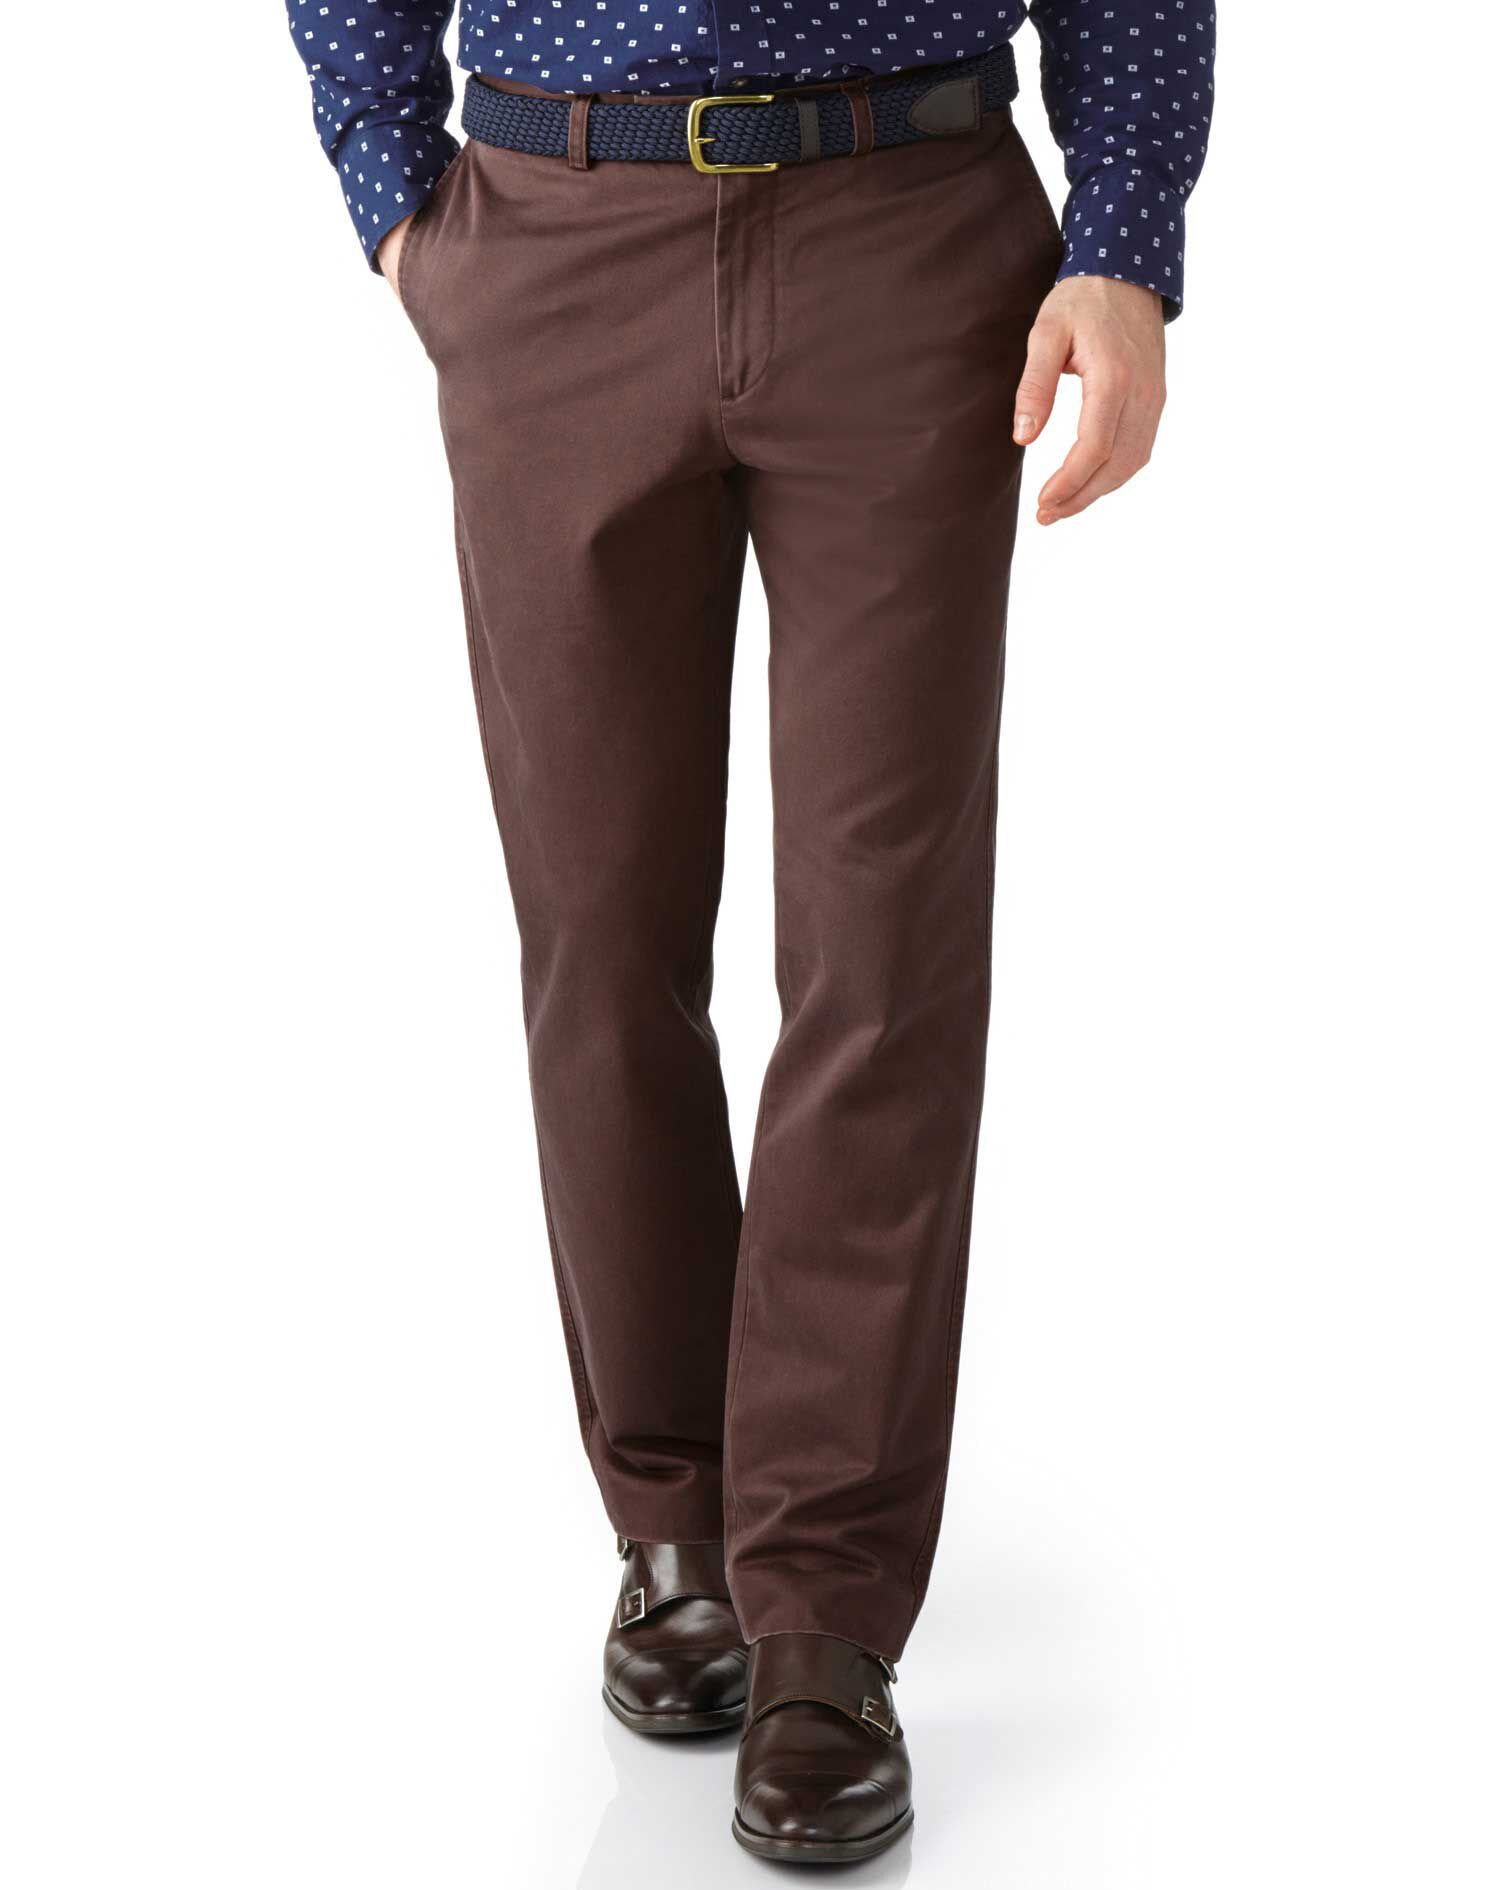 Brown Slim Fit Flat Front Cotton Chino Trousers Size W42 L34 by Charles Tyrwhitt